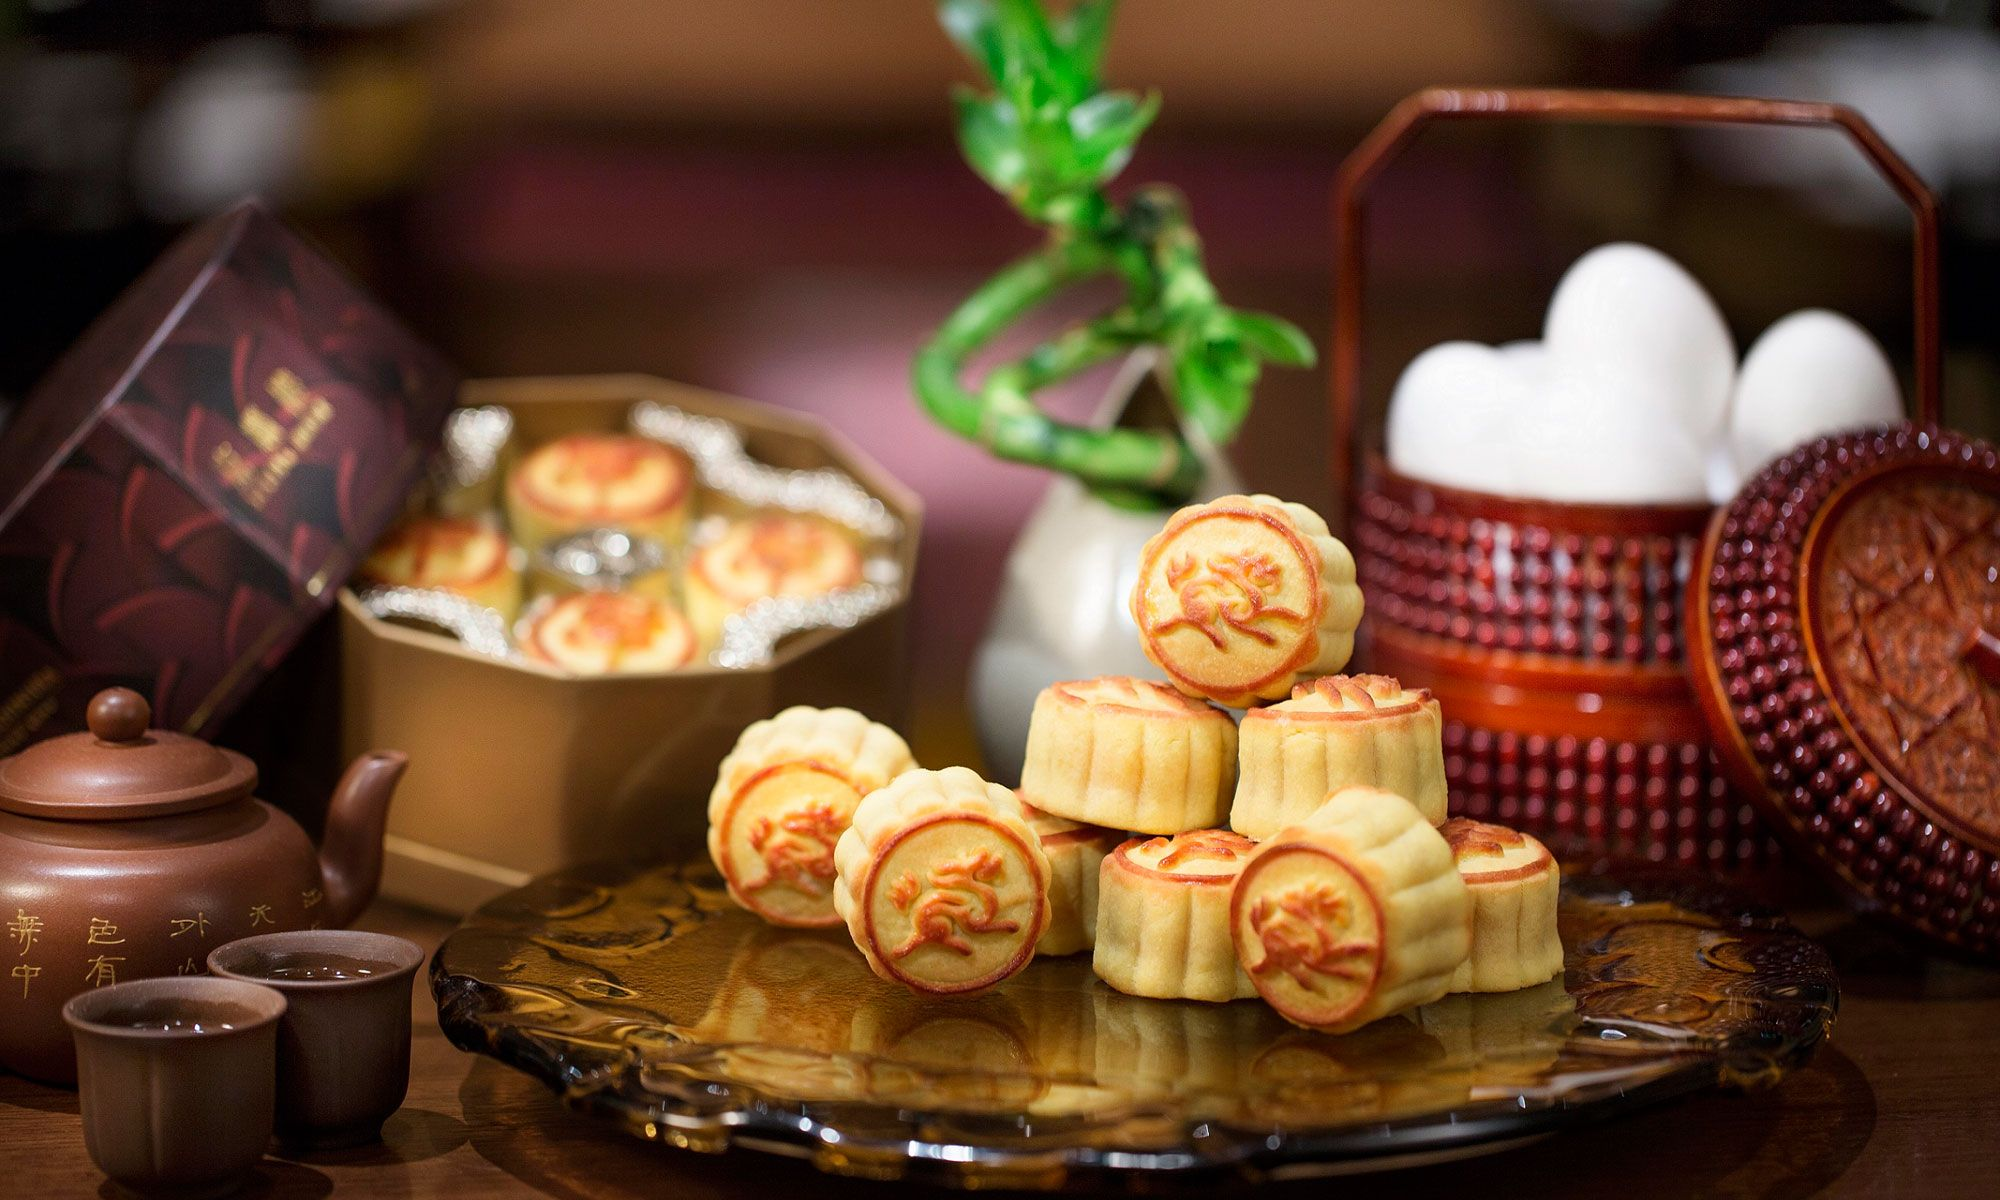 Top 5 Mooncakes You Should Not Miss